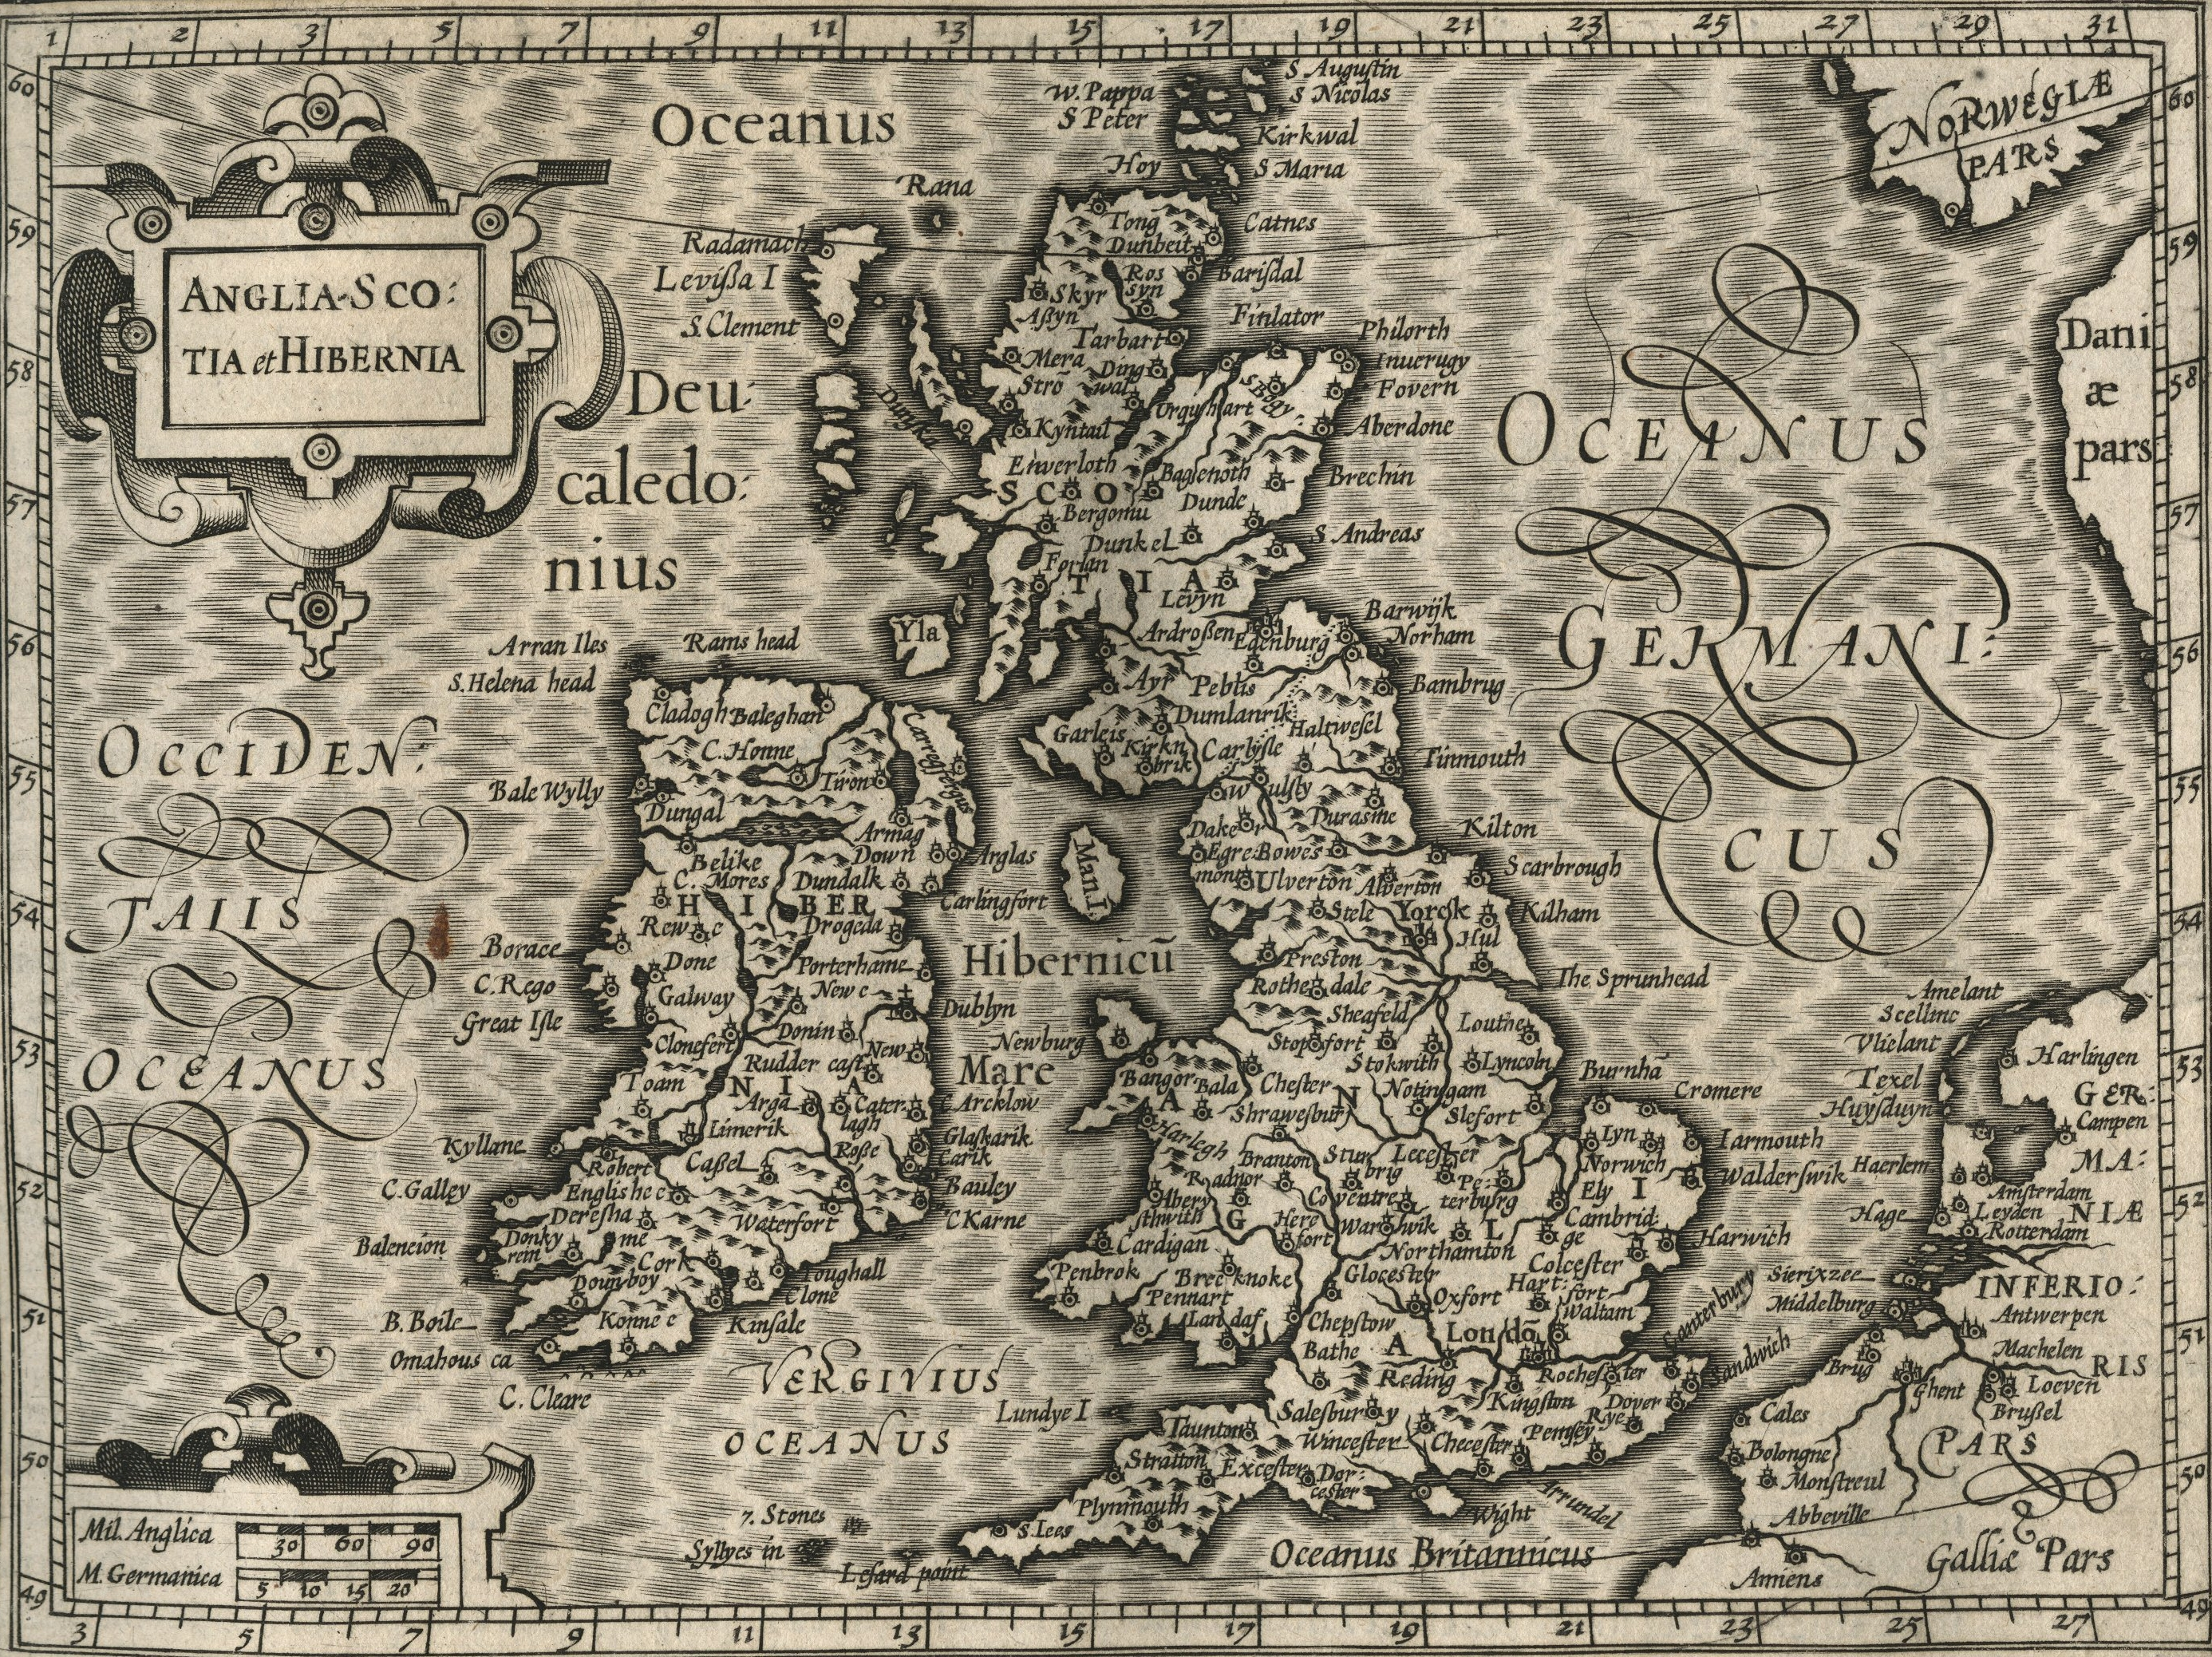 Old Latin map of the British Isles HD Wallpaper Background Image 2772x2076